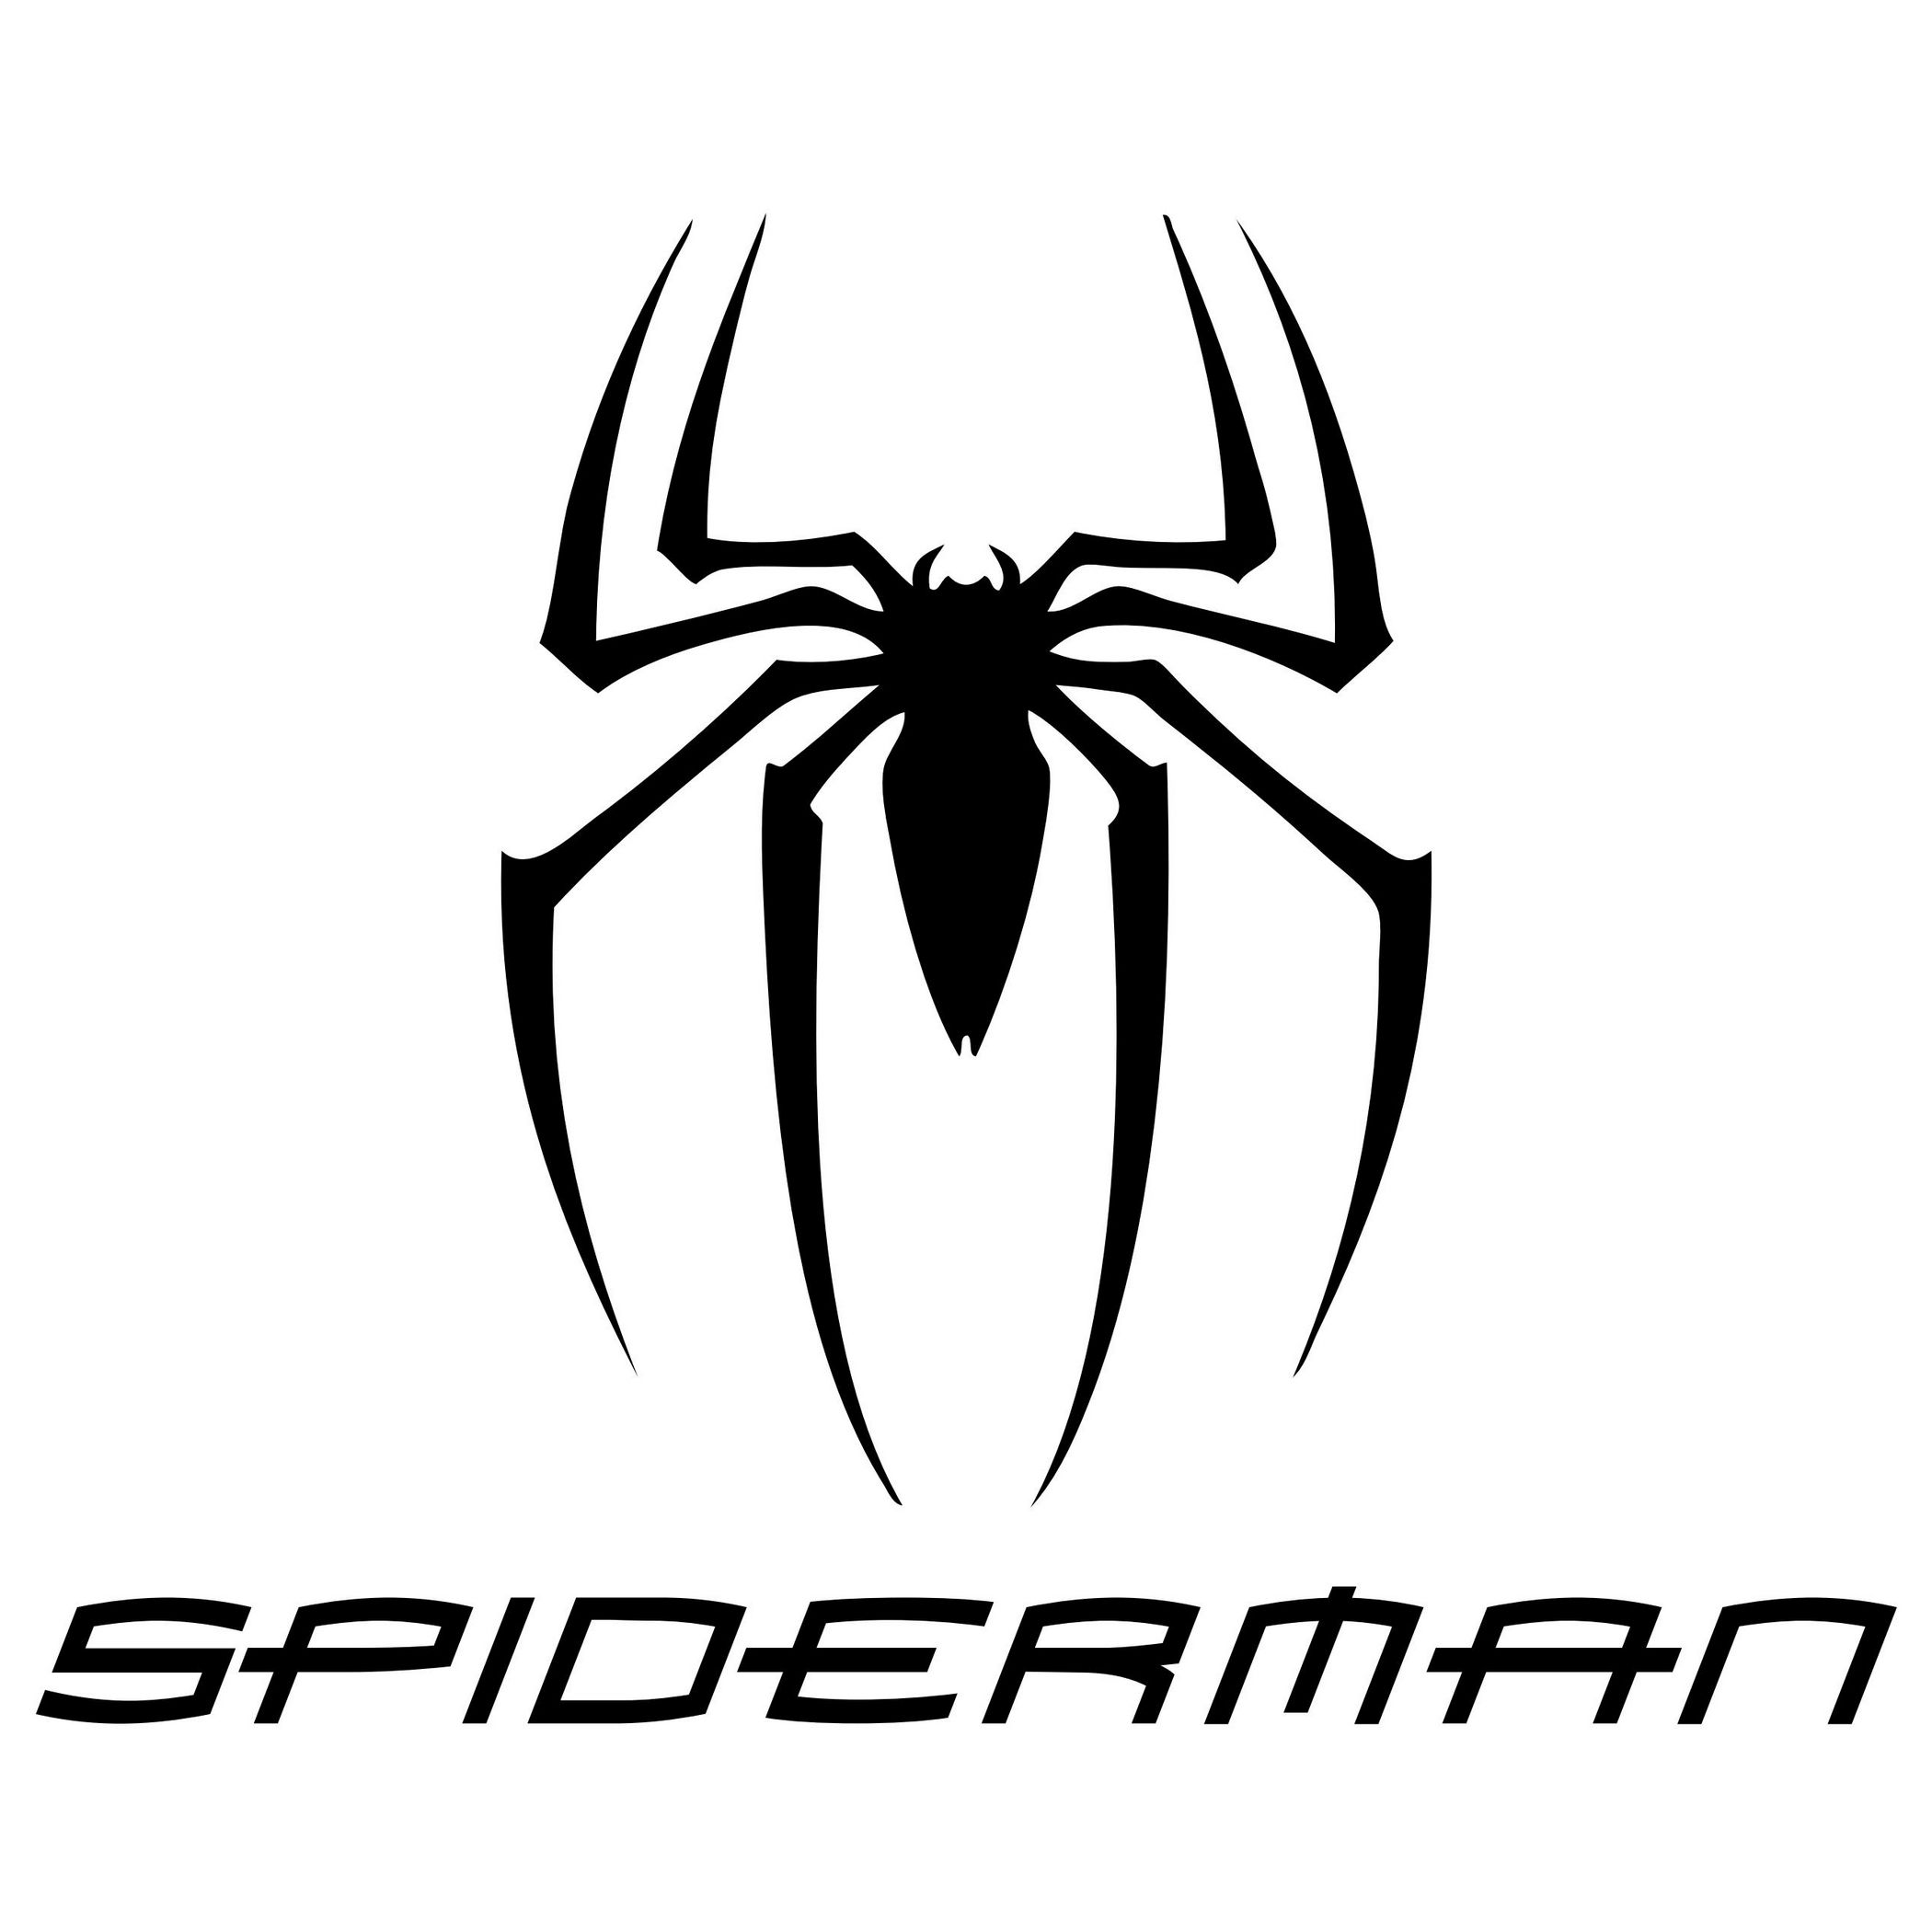 Spider Man Logo Video Games Pinterest Man